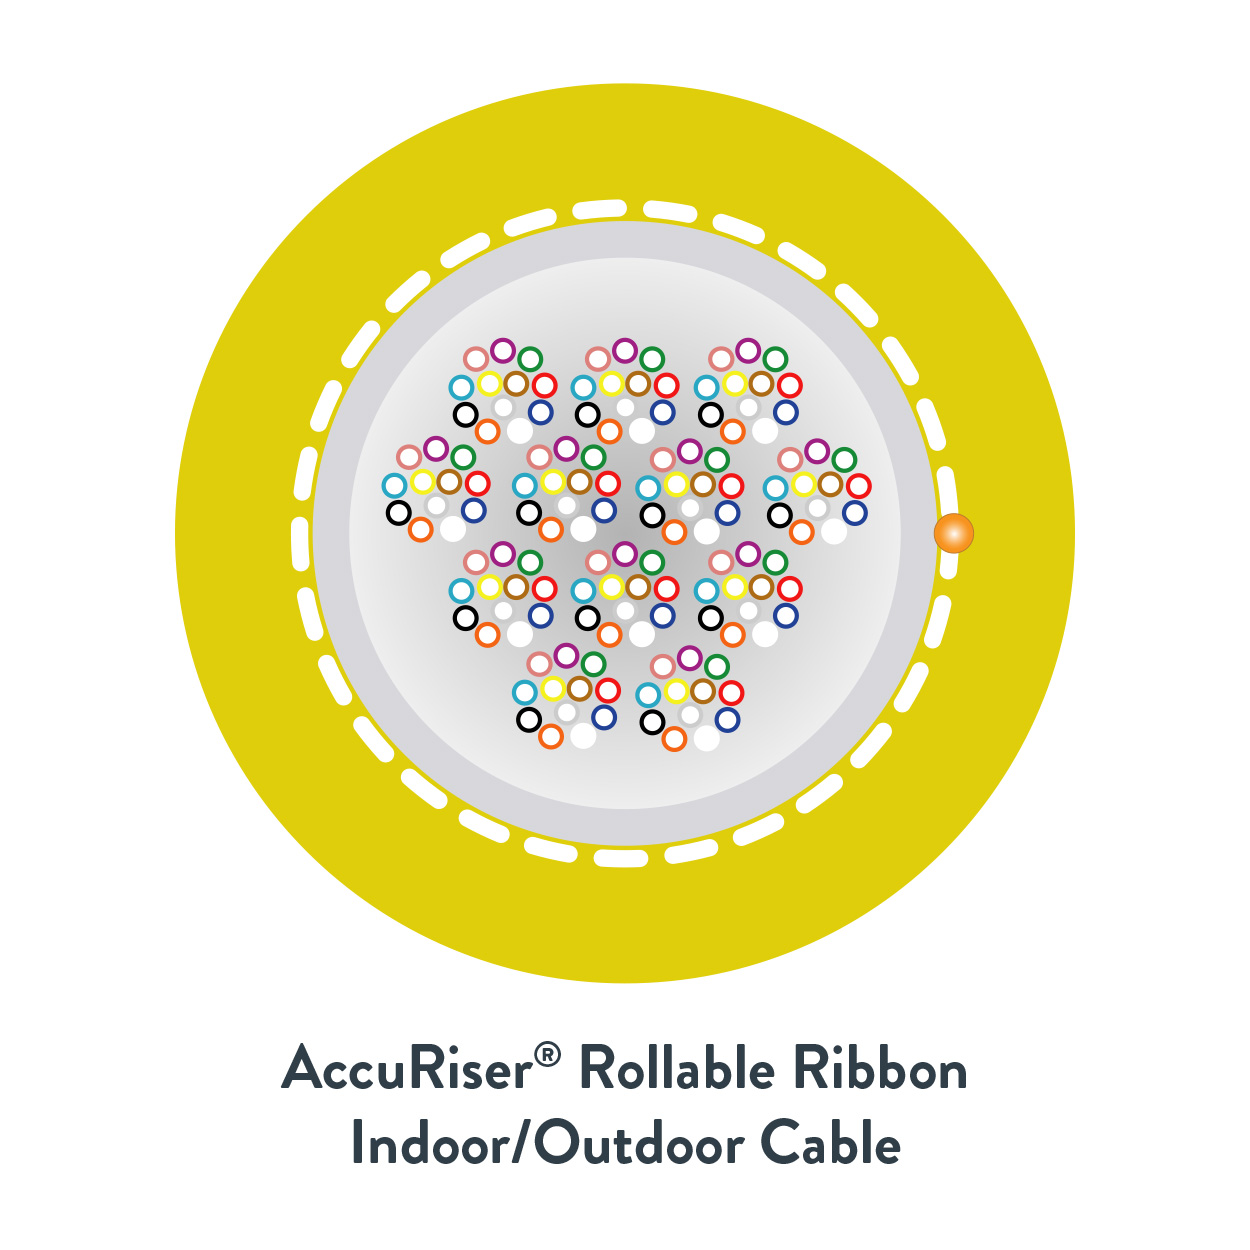 AccuRiser_Rollable_Ribbon_Cable